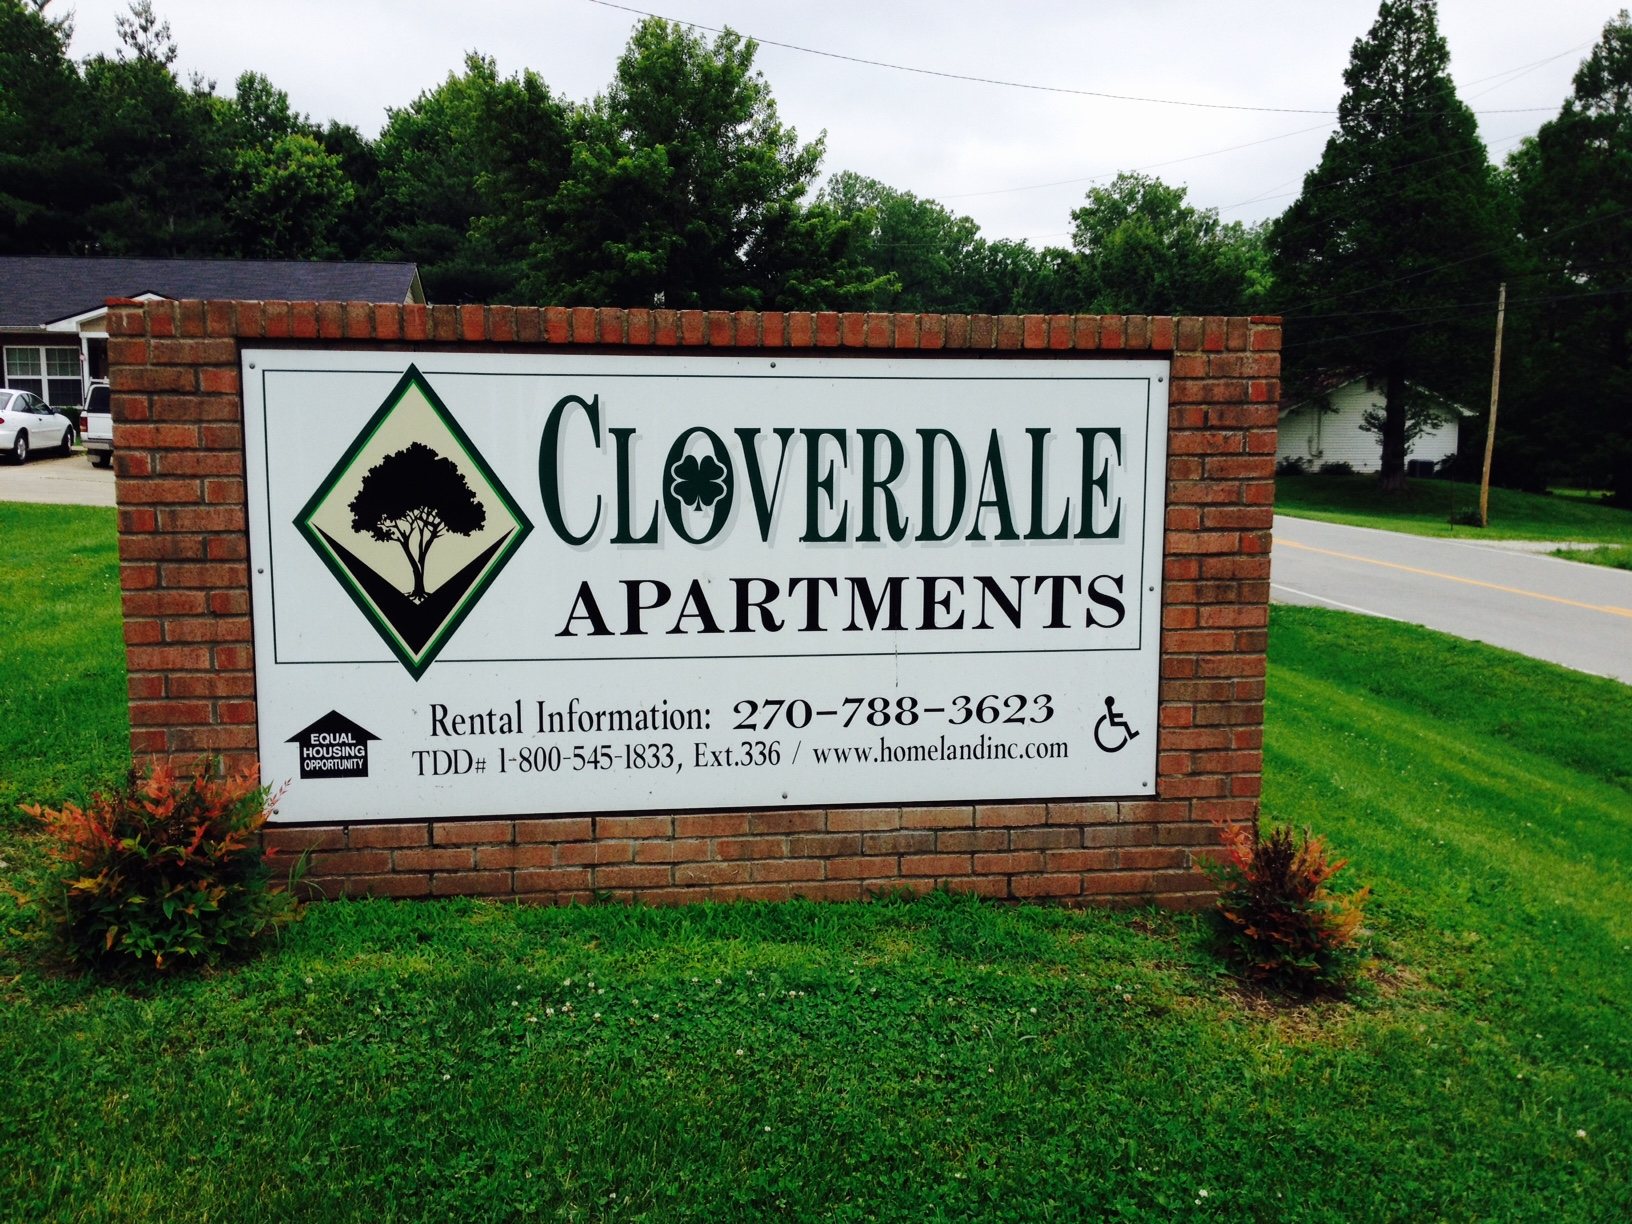 Cloverdale Apartments